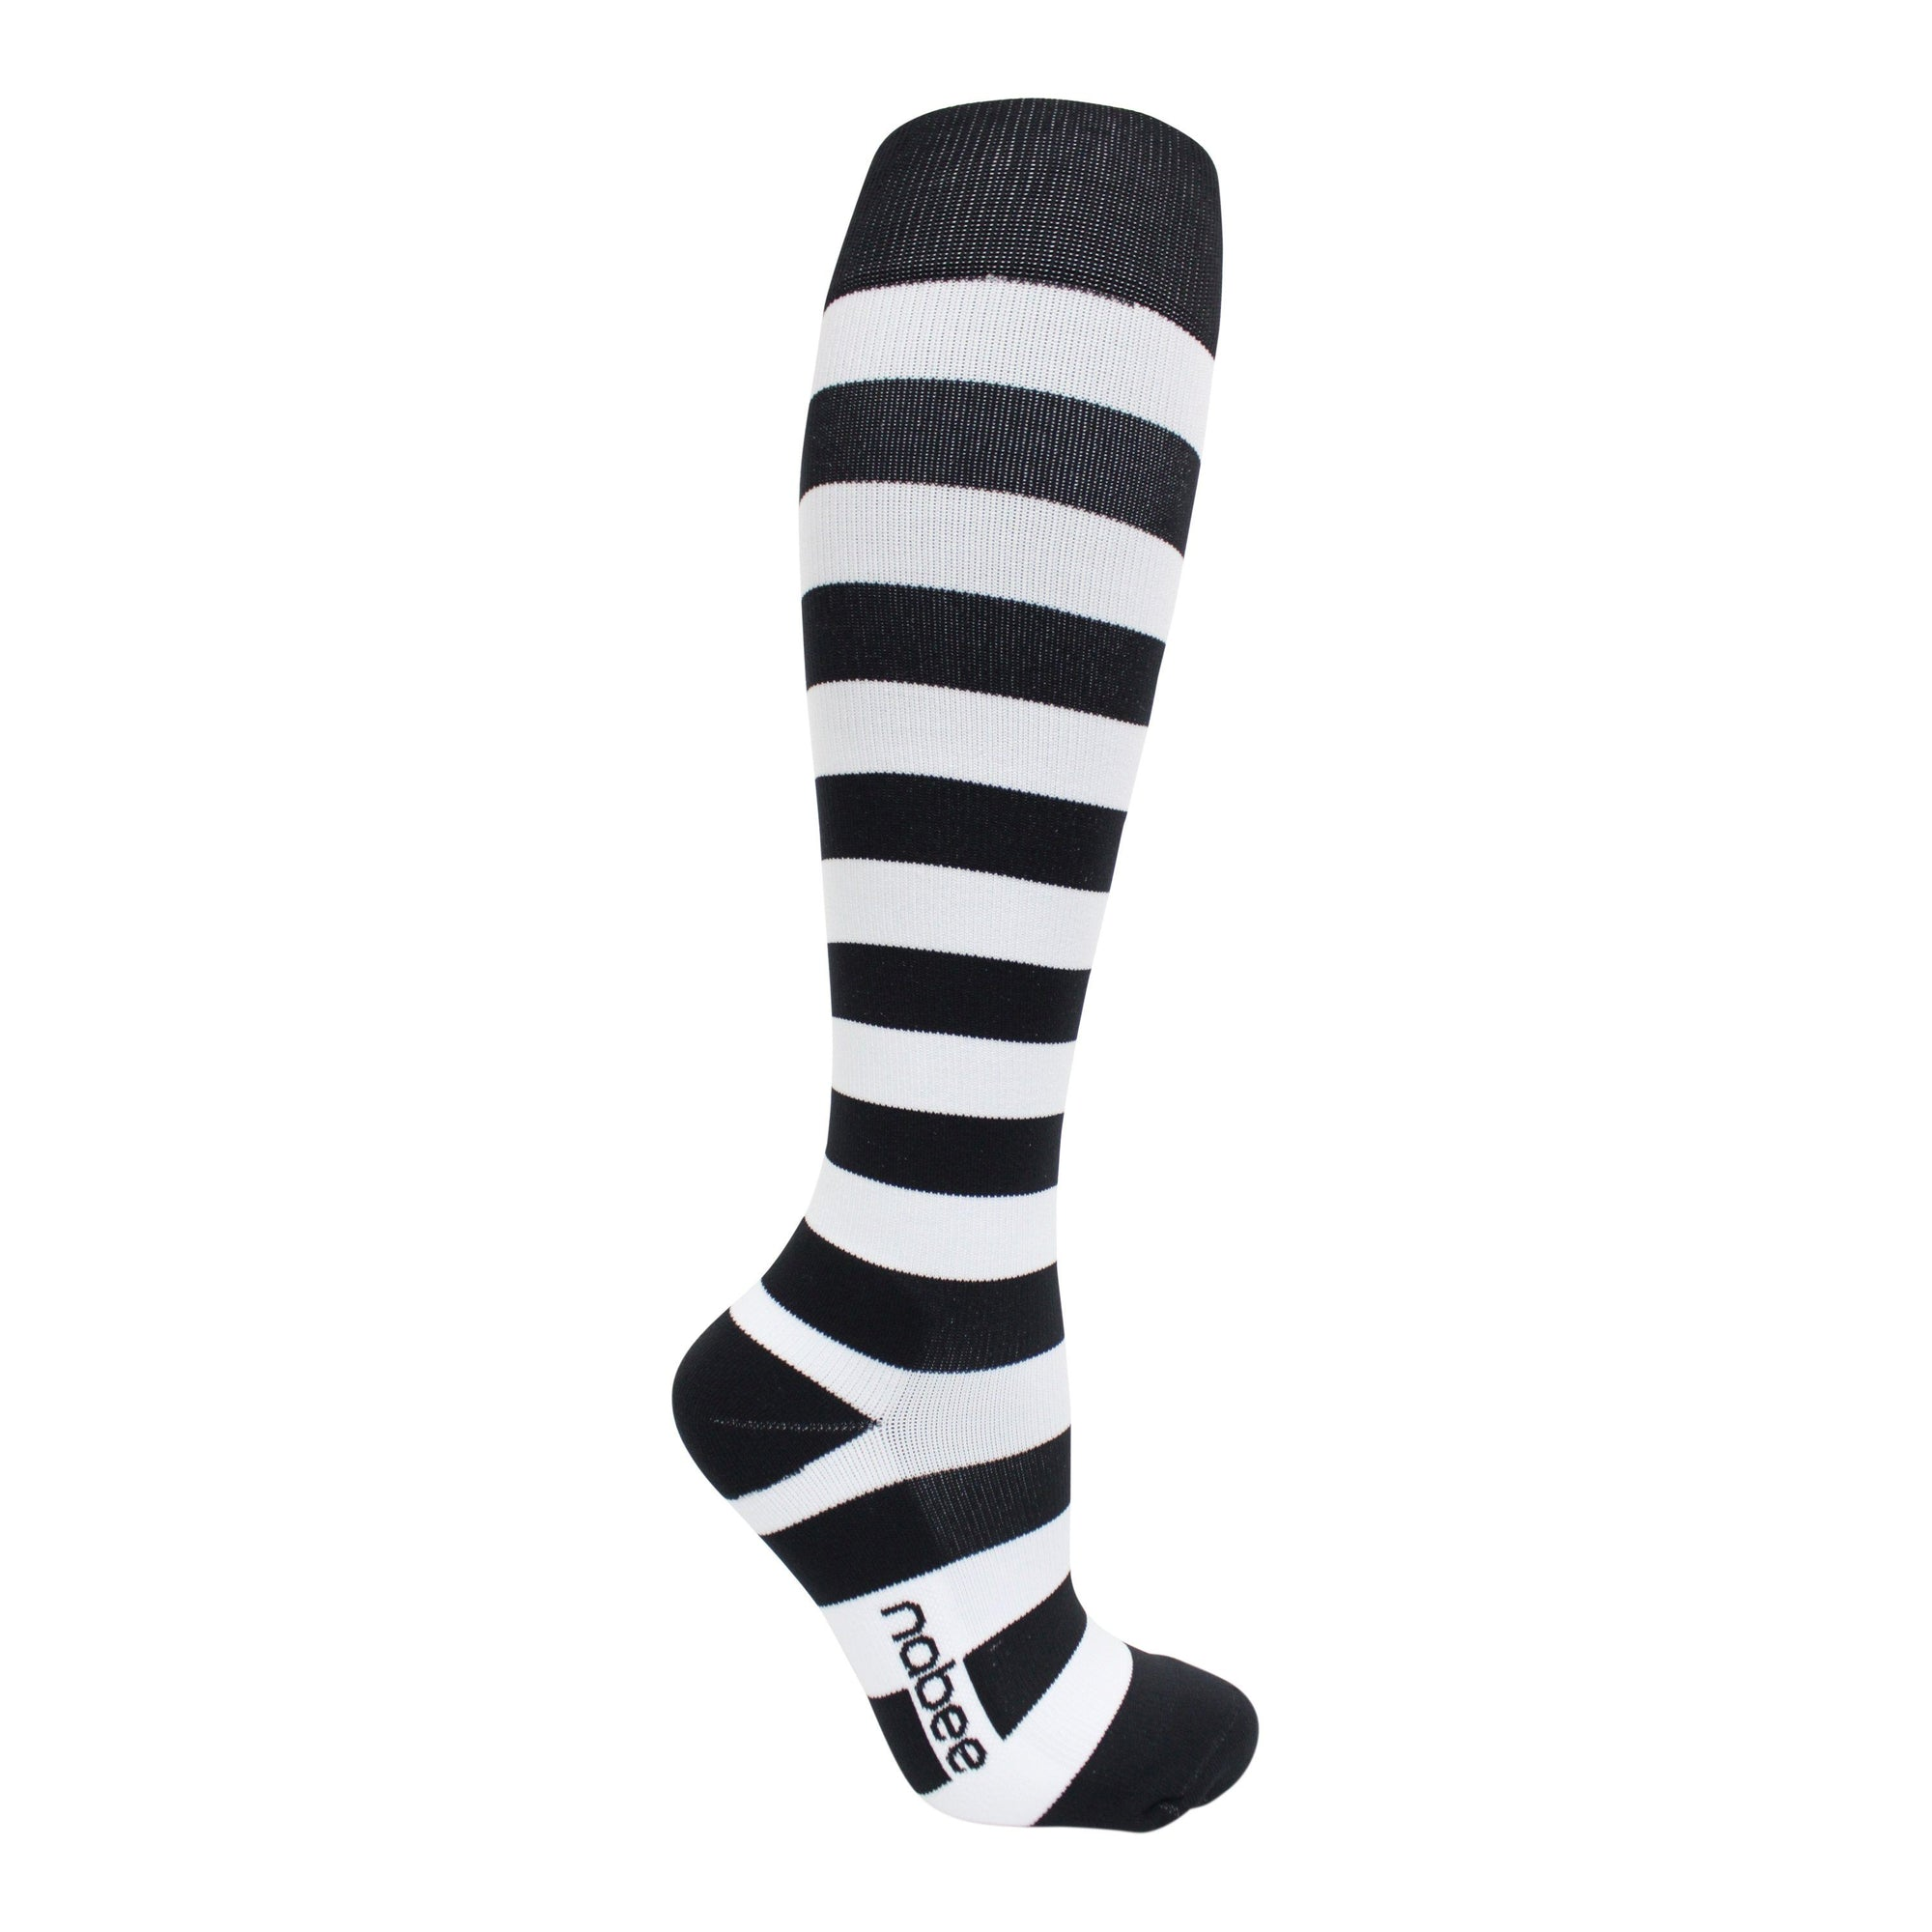 Compression Socks - Black & White Stripe - (20-30mmHg)